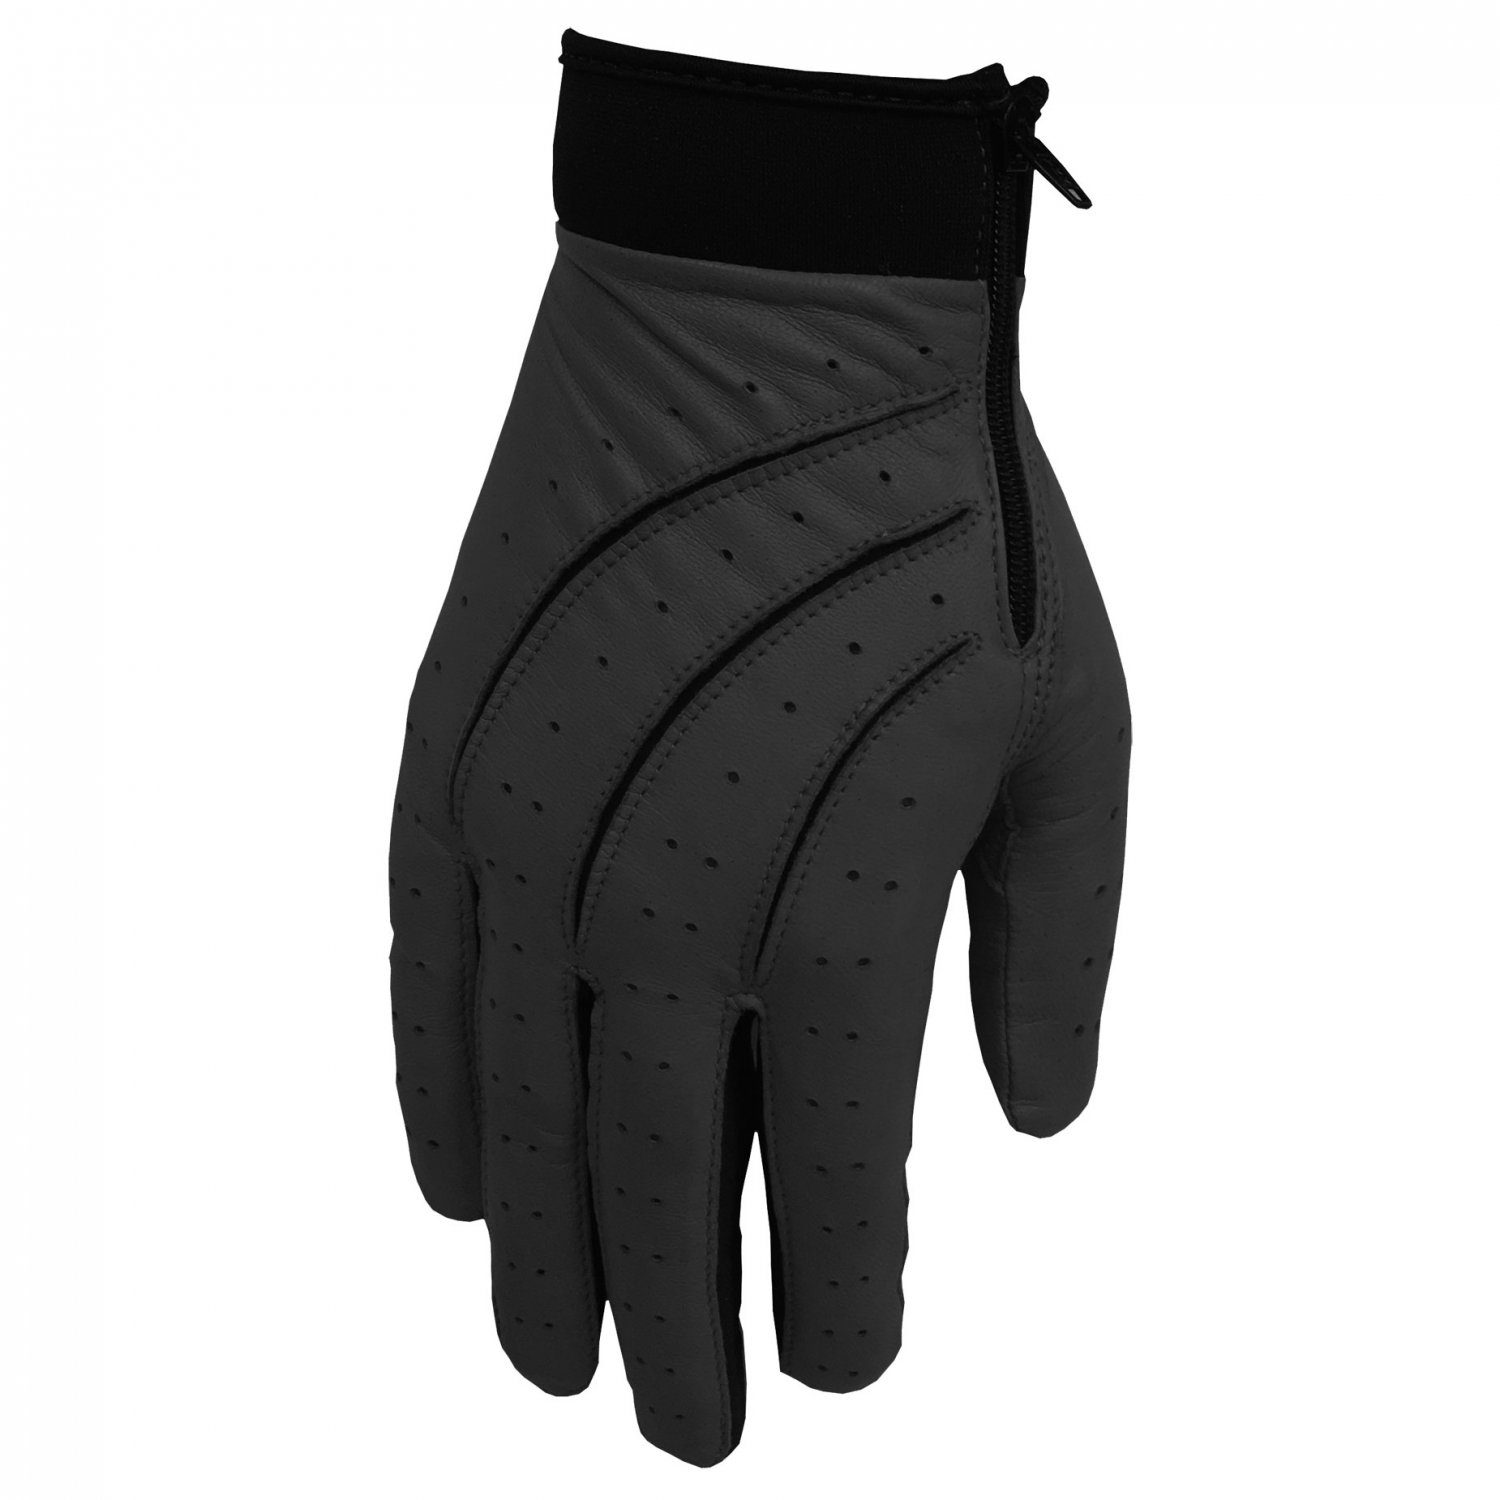 Hilts-Willard Men's Leather Stretch Driving Gloves - S - Black